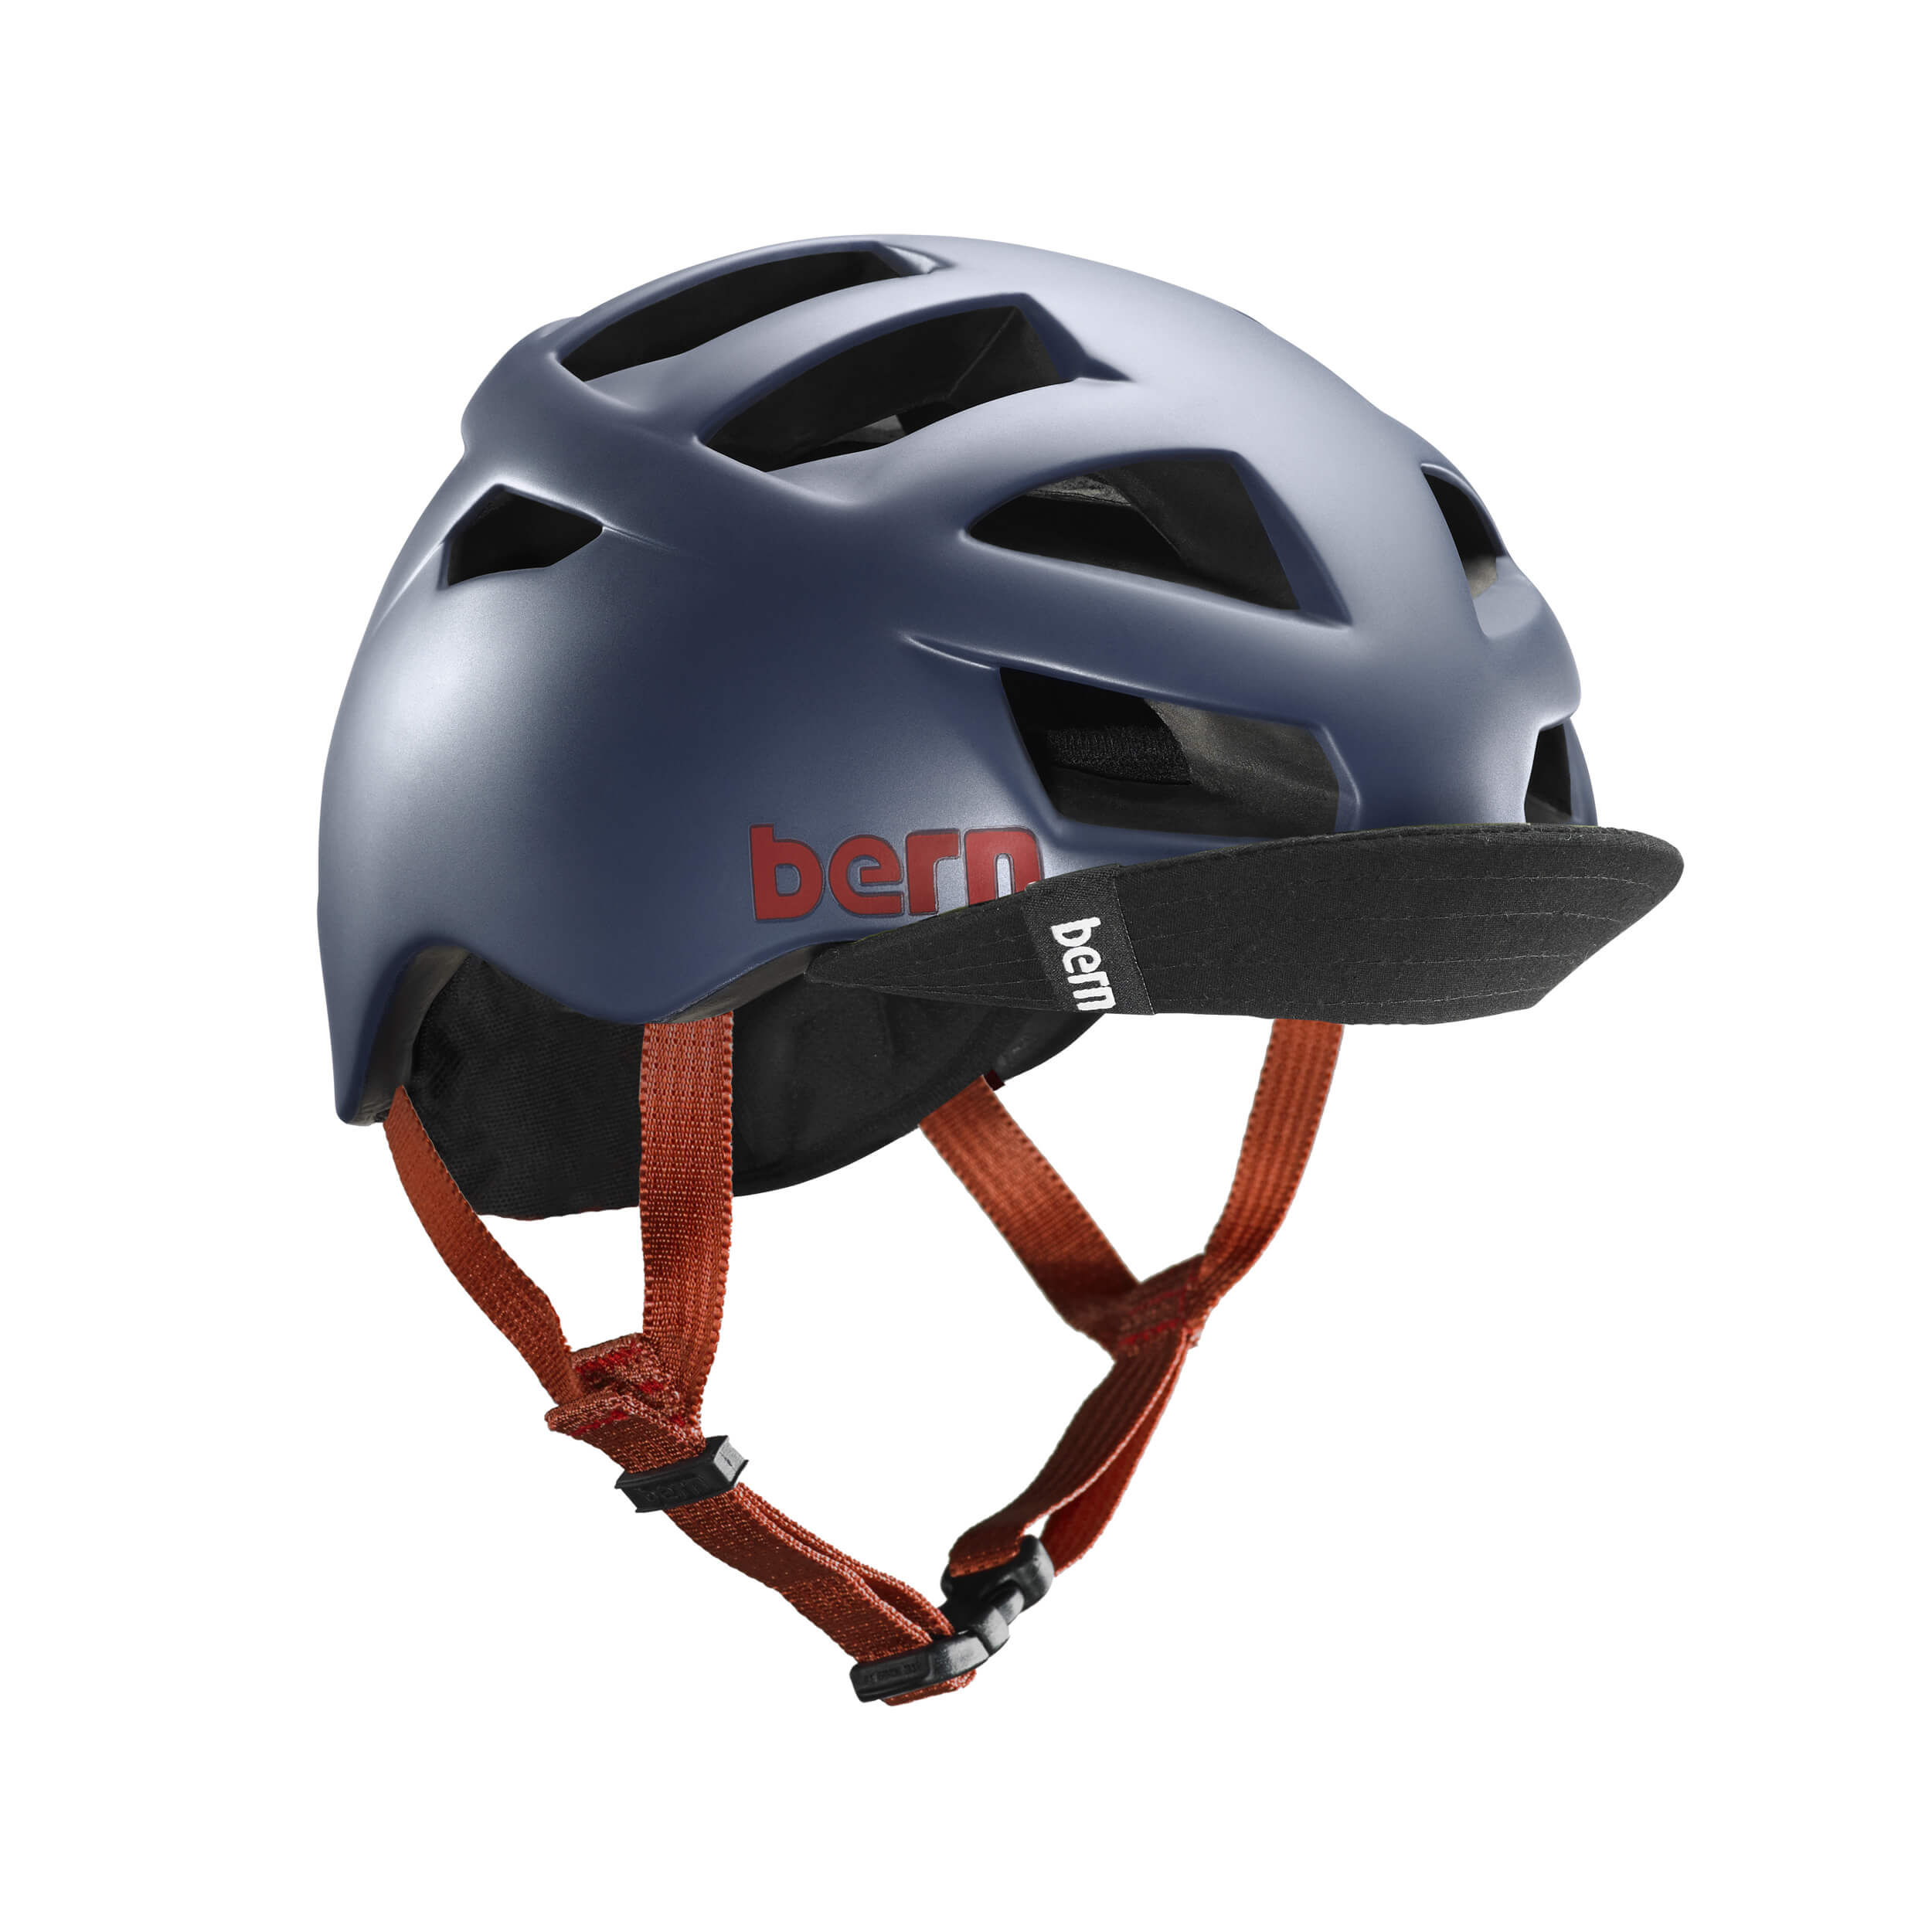 Bern Allston Bike Helmet Review